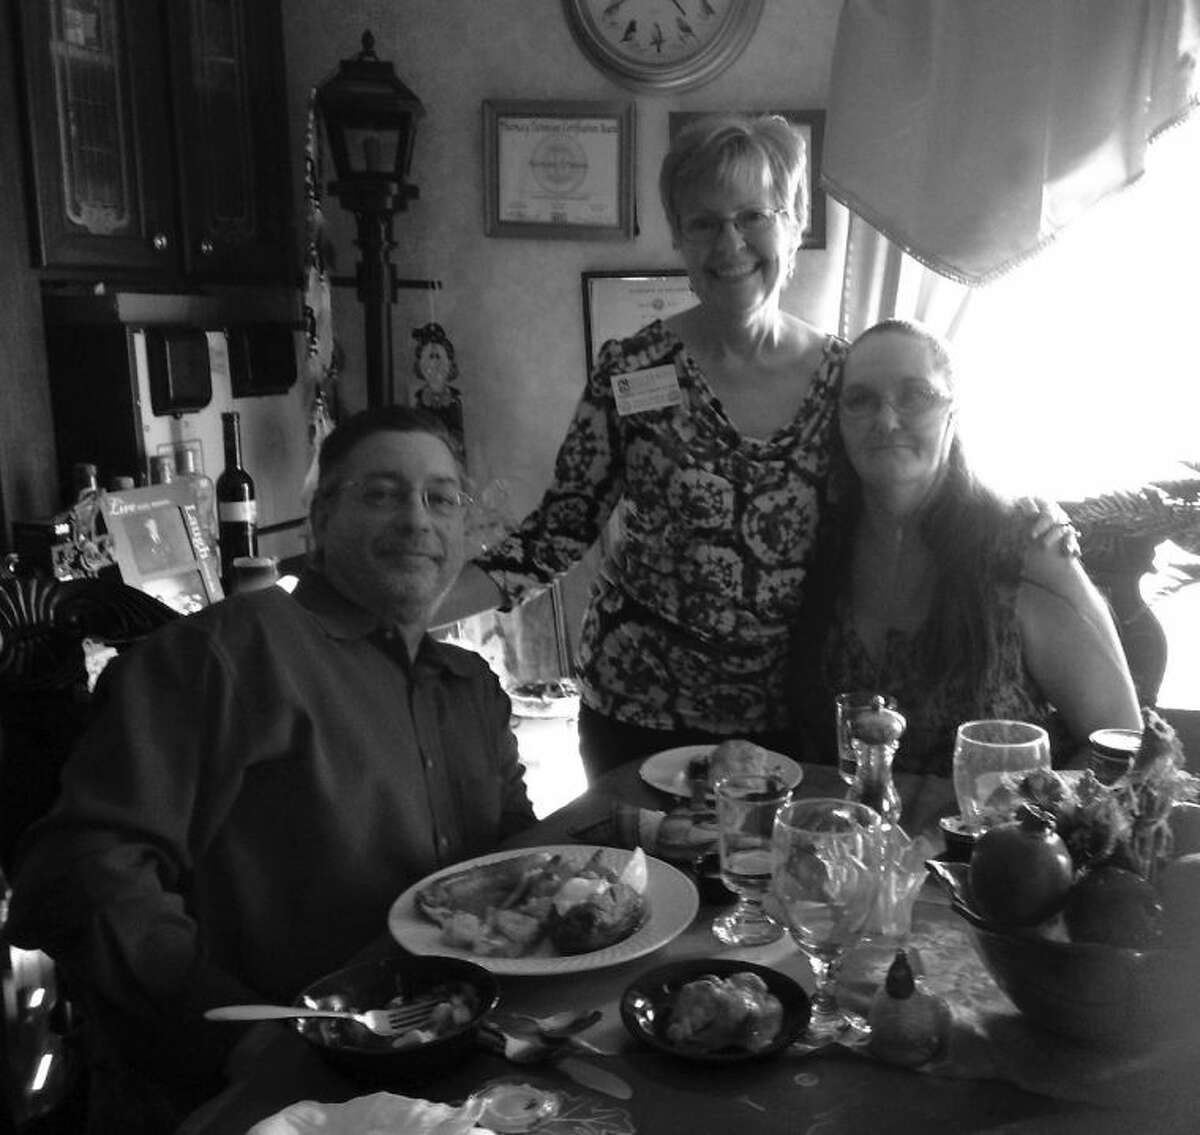 Richmond resident and hospice patient Morrissia Sauer and her husband enjoy a special Red Lobster dinner arranged by a representative from Silverado Hospice.